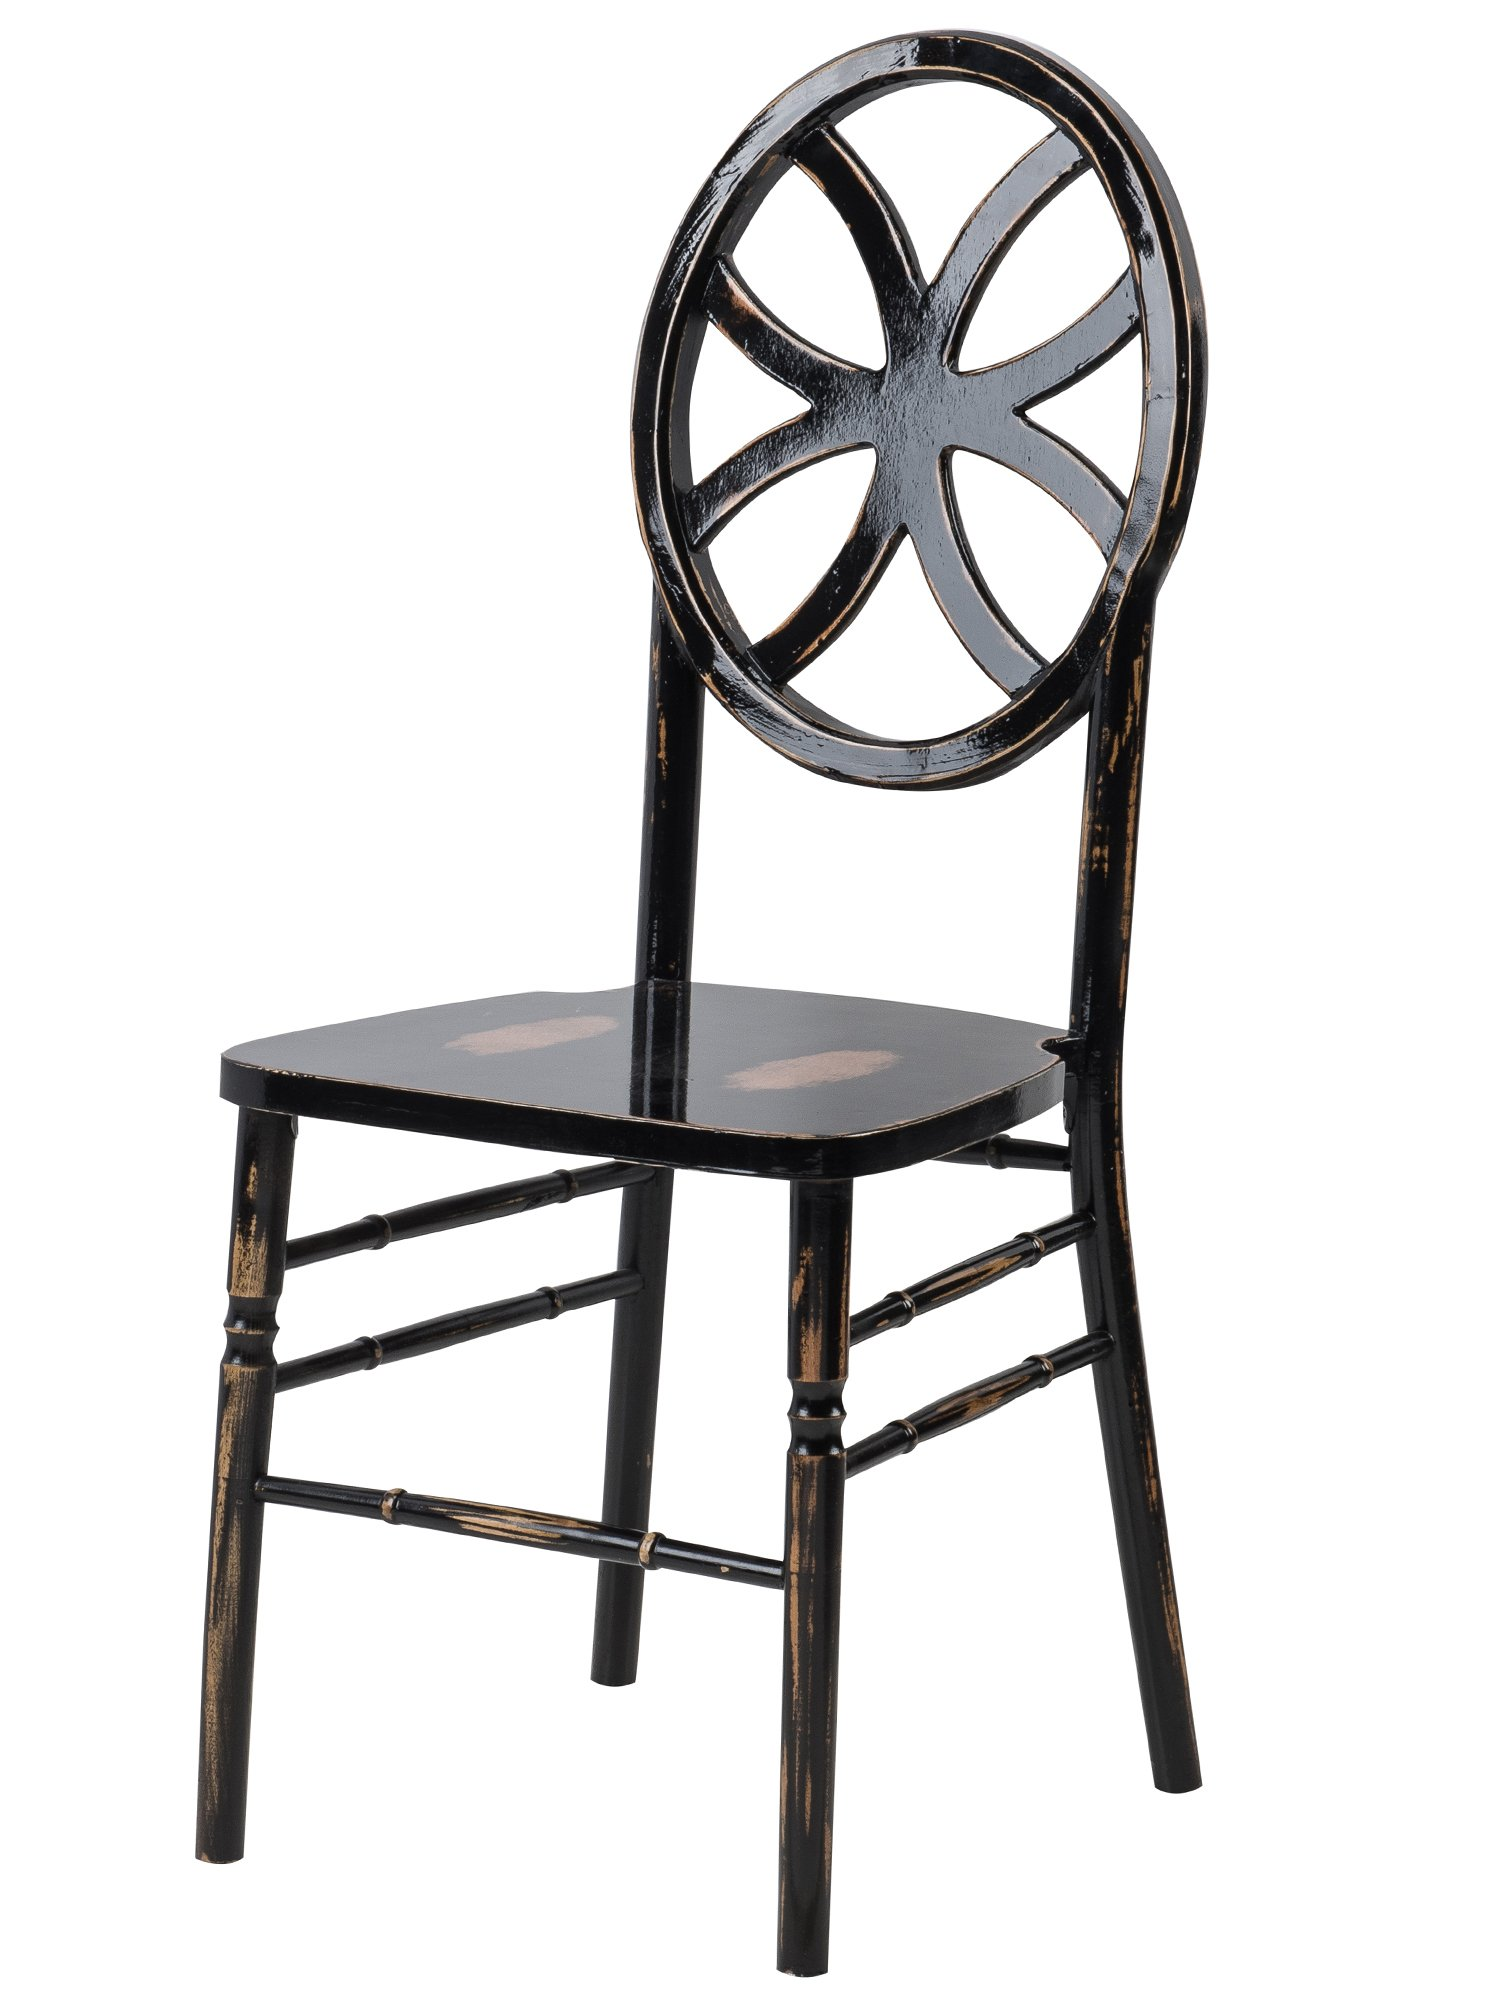 CSP Events W-440-VR-LBW Veronique chairs series (Clover), 38.75'' Height, 16'' Width, 16'' Length, Lime Black Wash